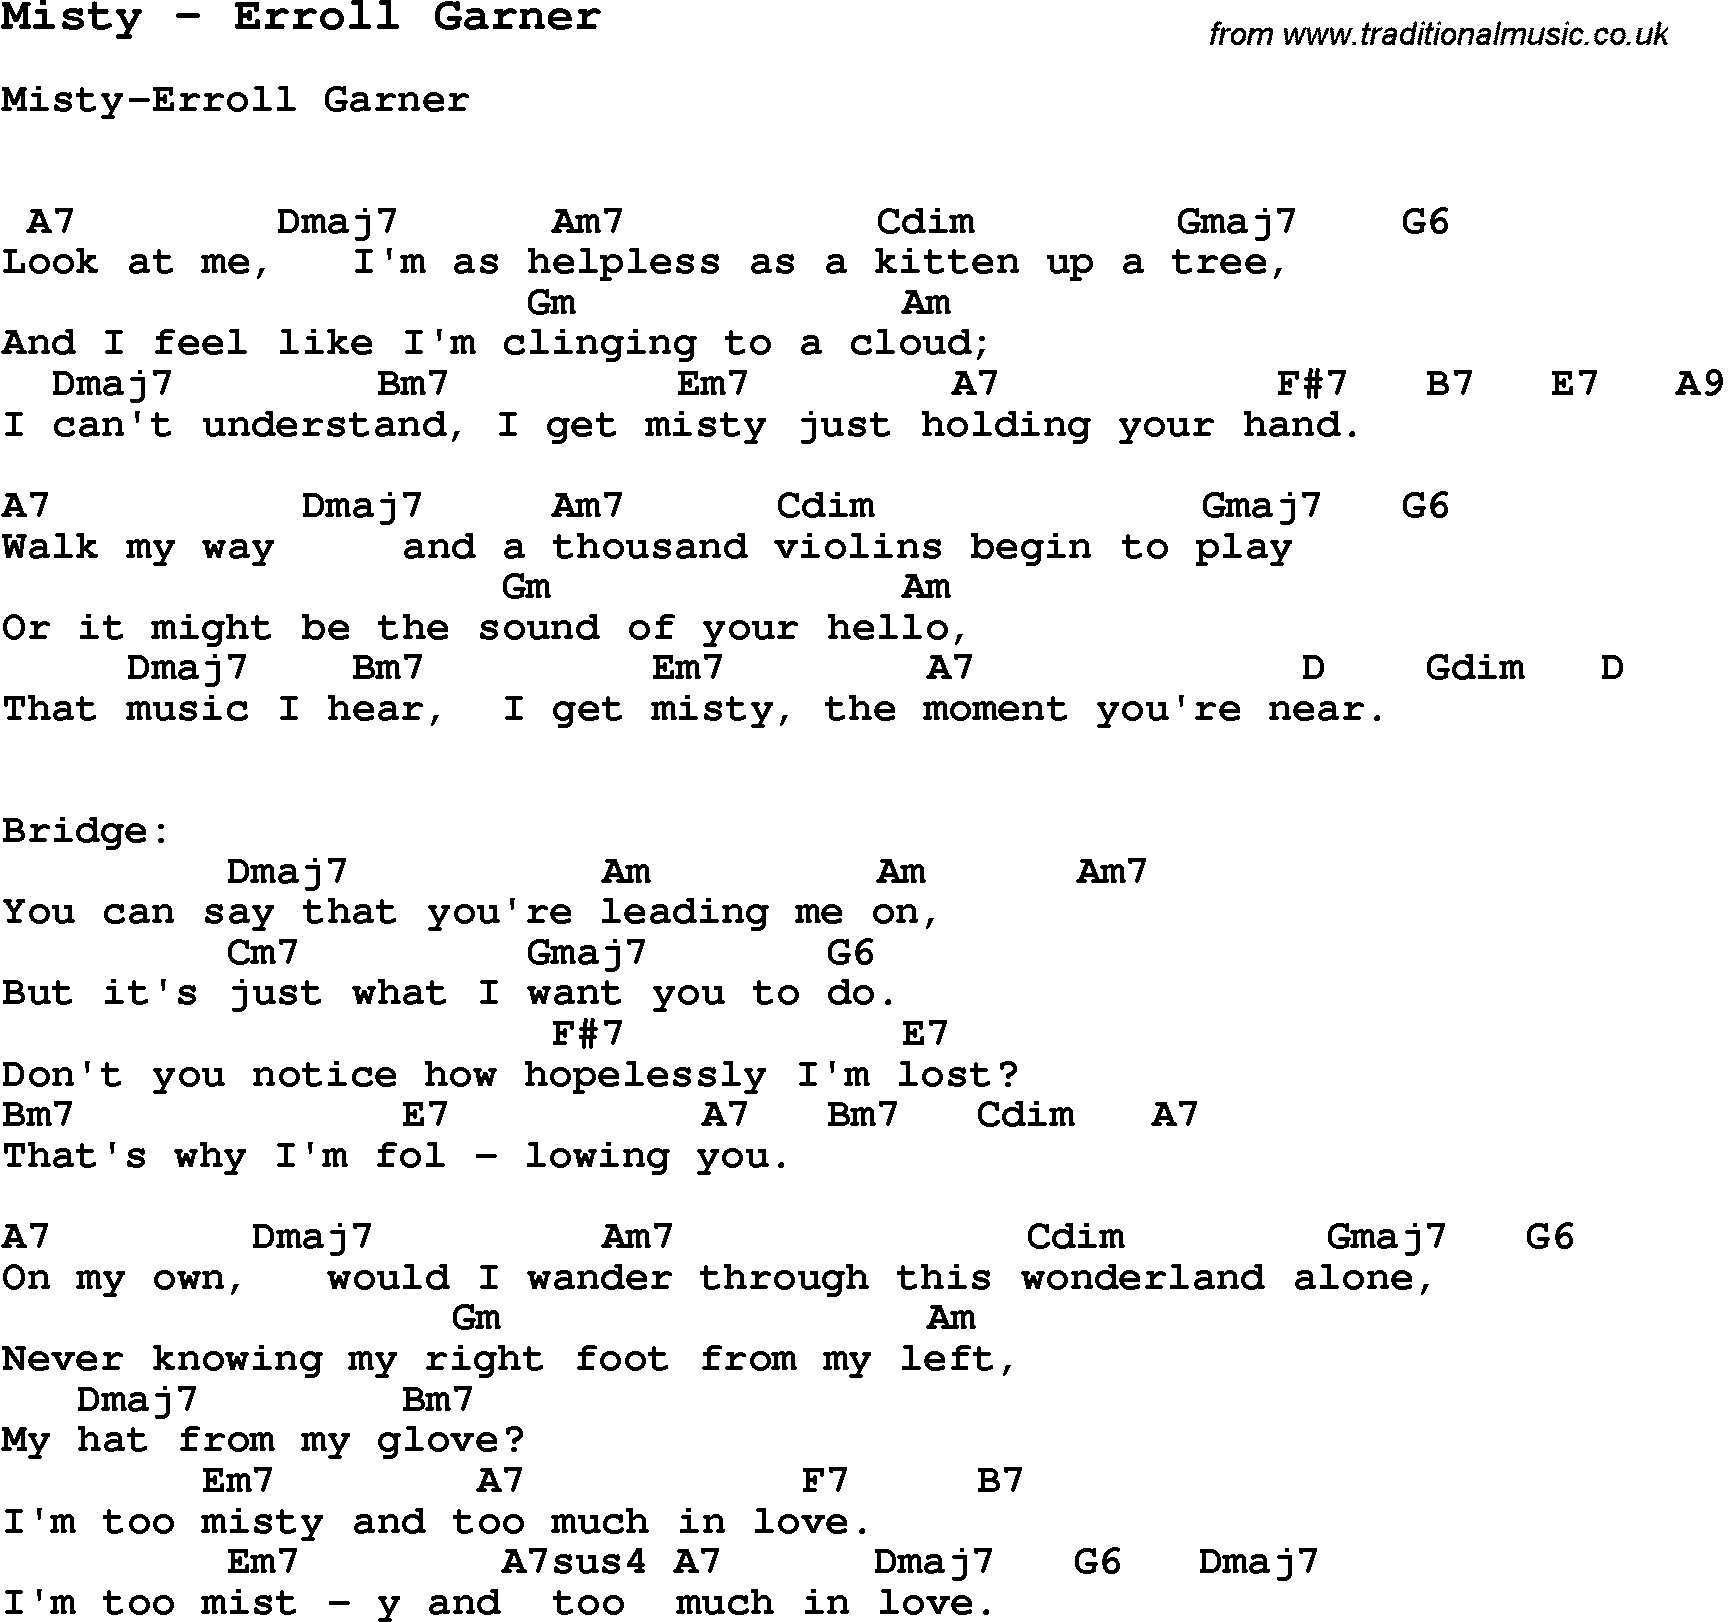 Song misty by erroll garner with lyrics for vocal performance and song misty by erroll garner with lyrics for vocal performance and accompaniment chords for ukulele hexwebz Images